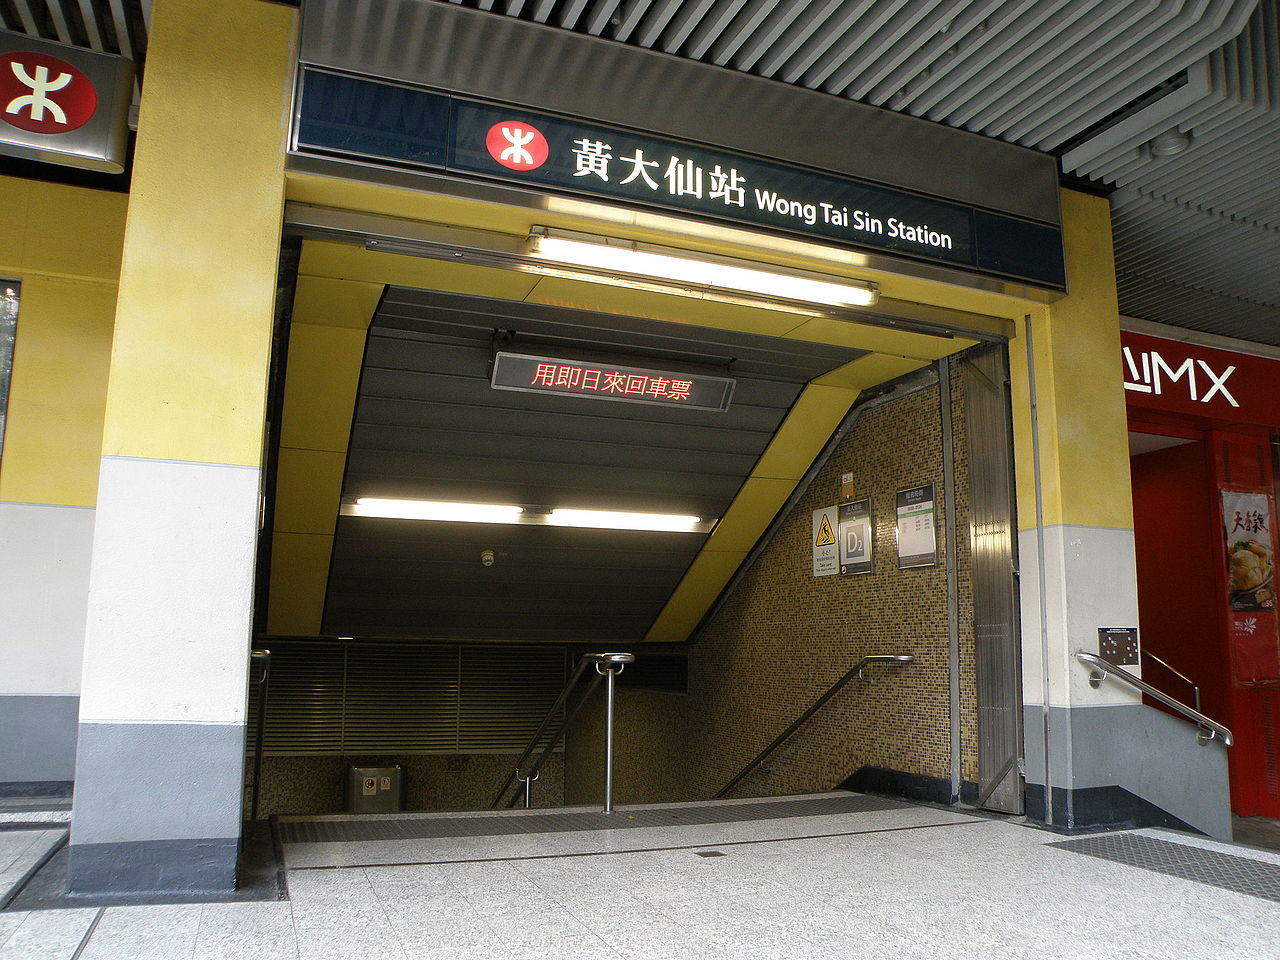 File:Entrance and exit D2 of Wong Tai Sin Station.JPG